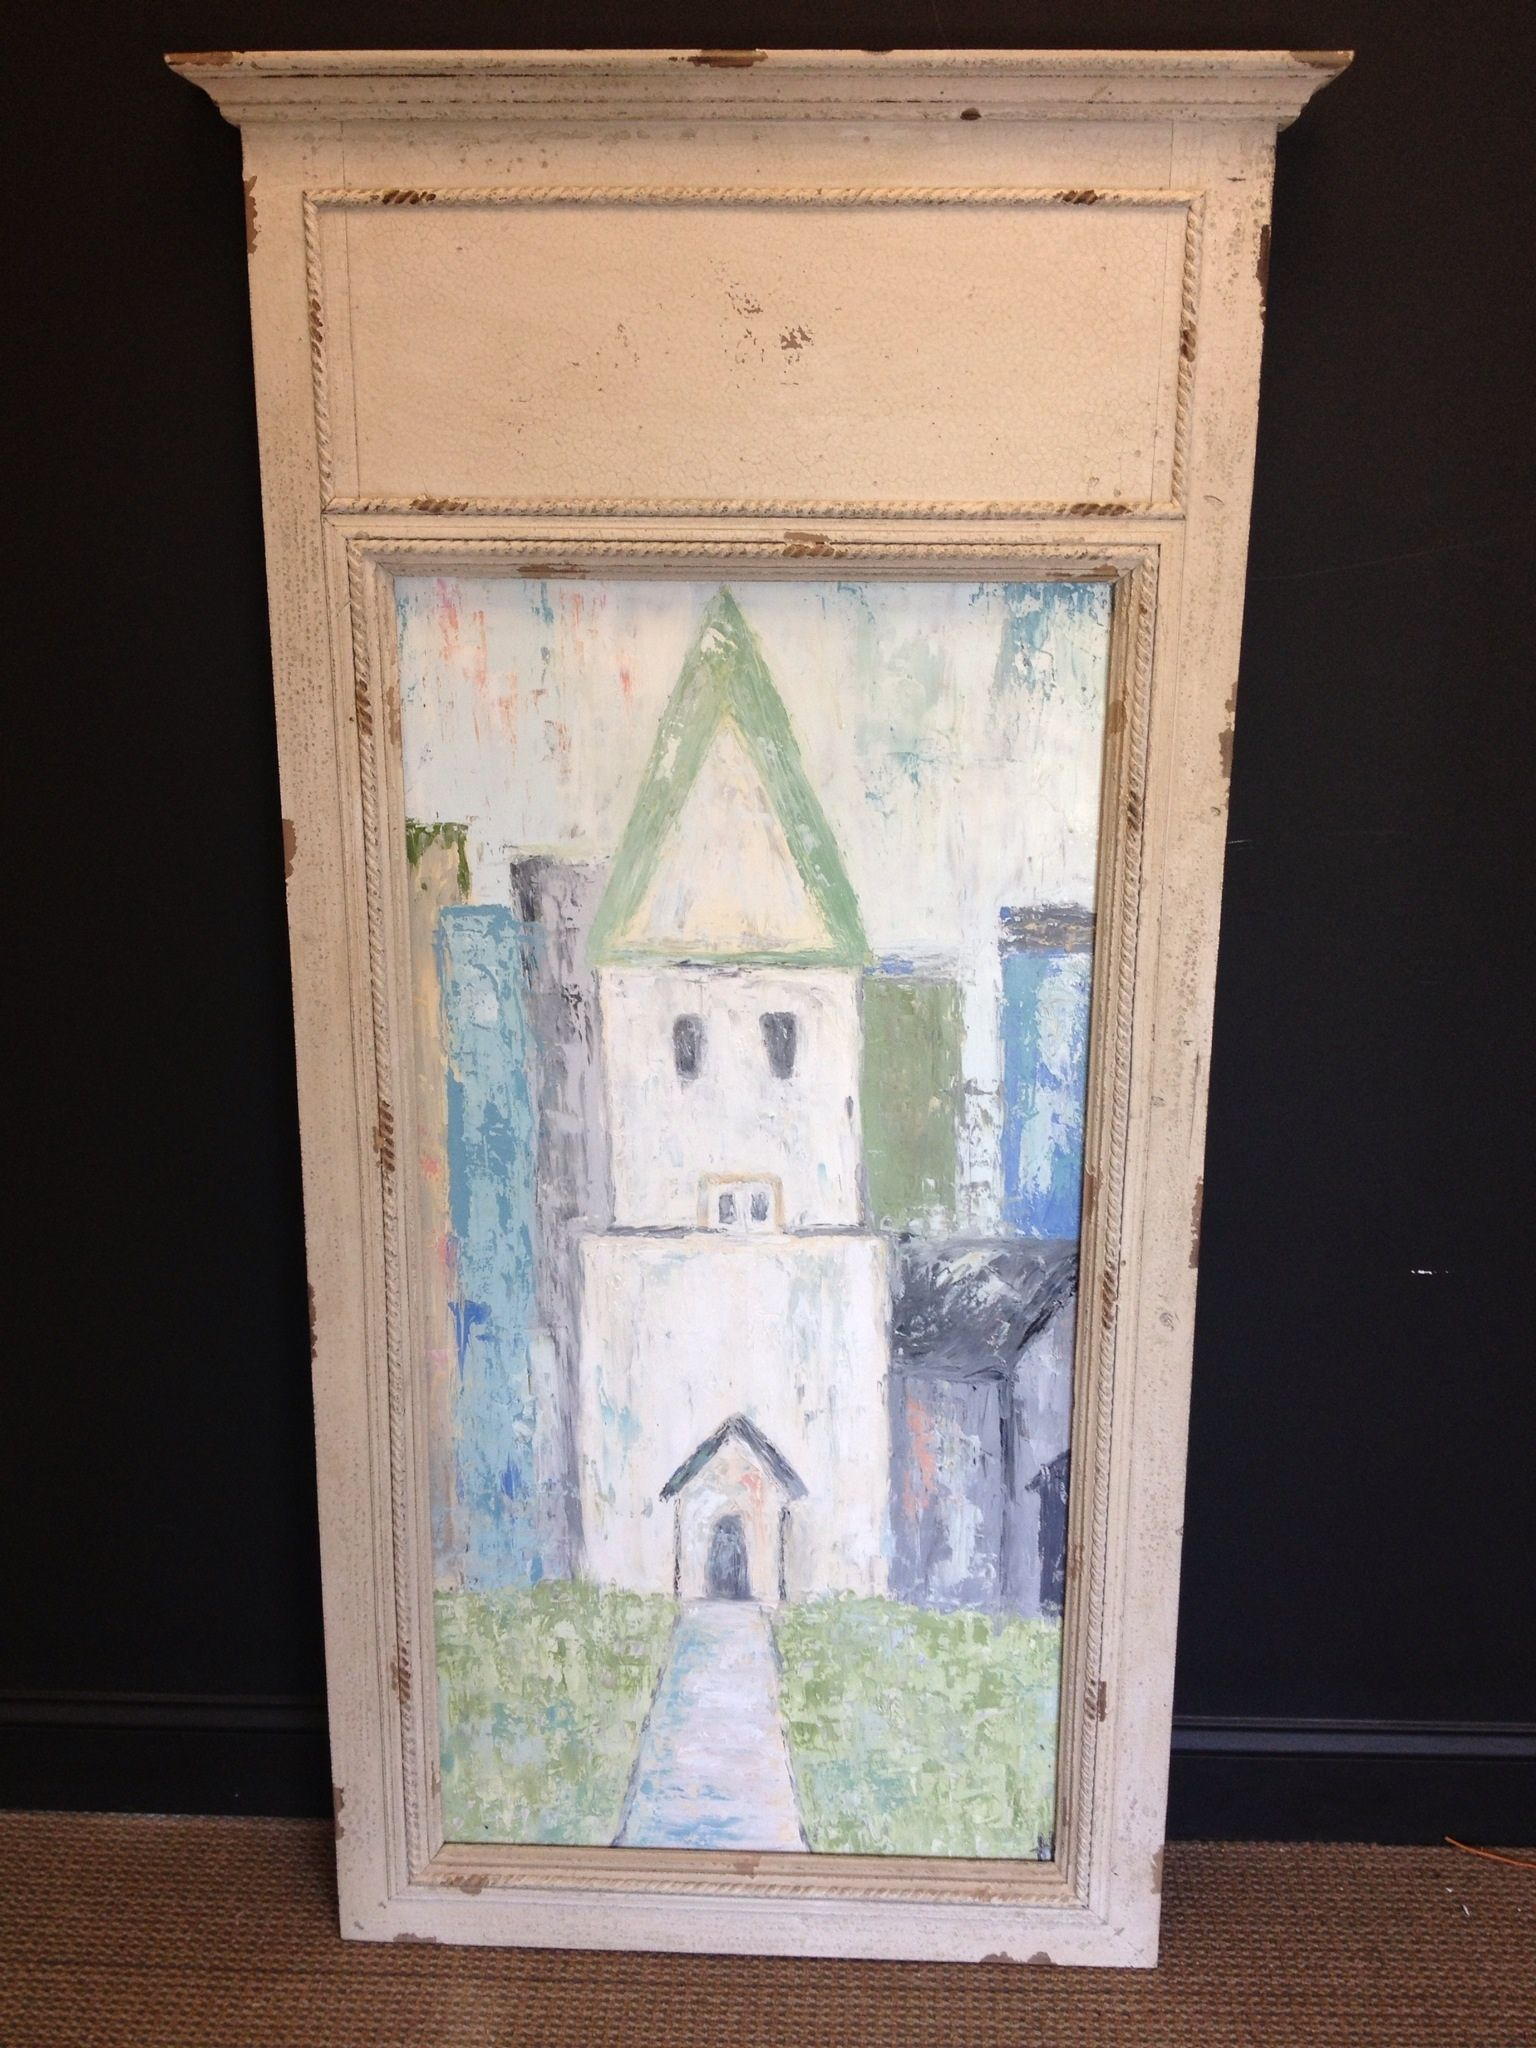 Come and pick out a one of kind piece by our very own Hannah Clayton :) OR talk to her about a custom painting